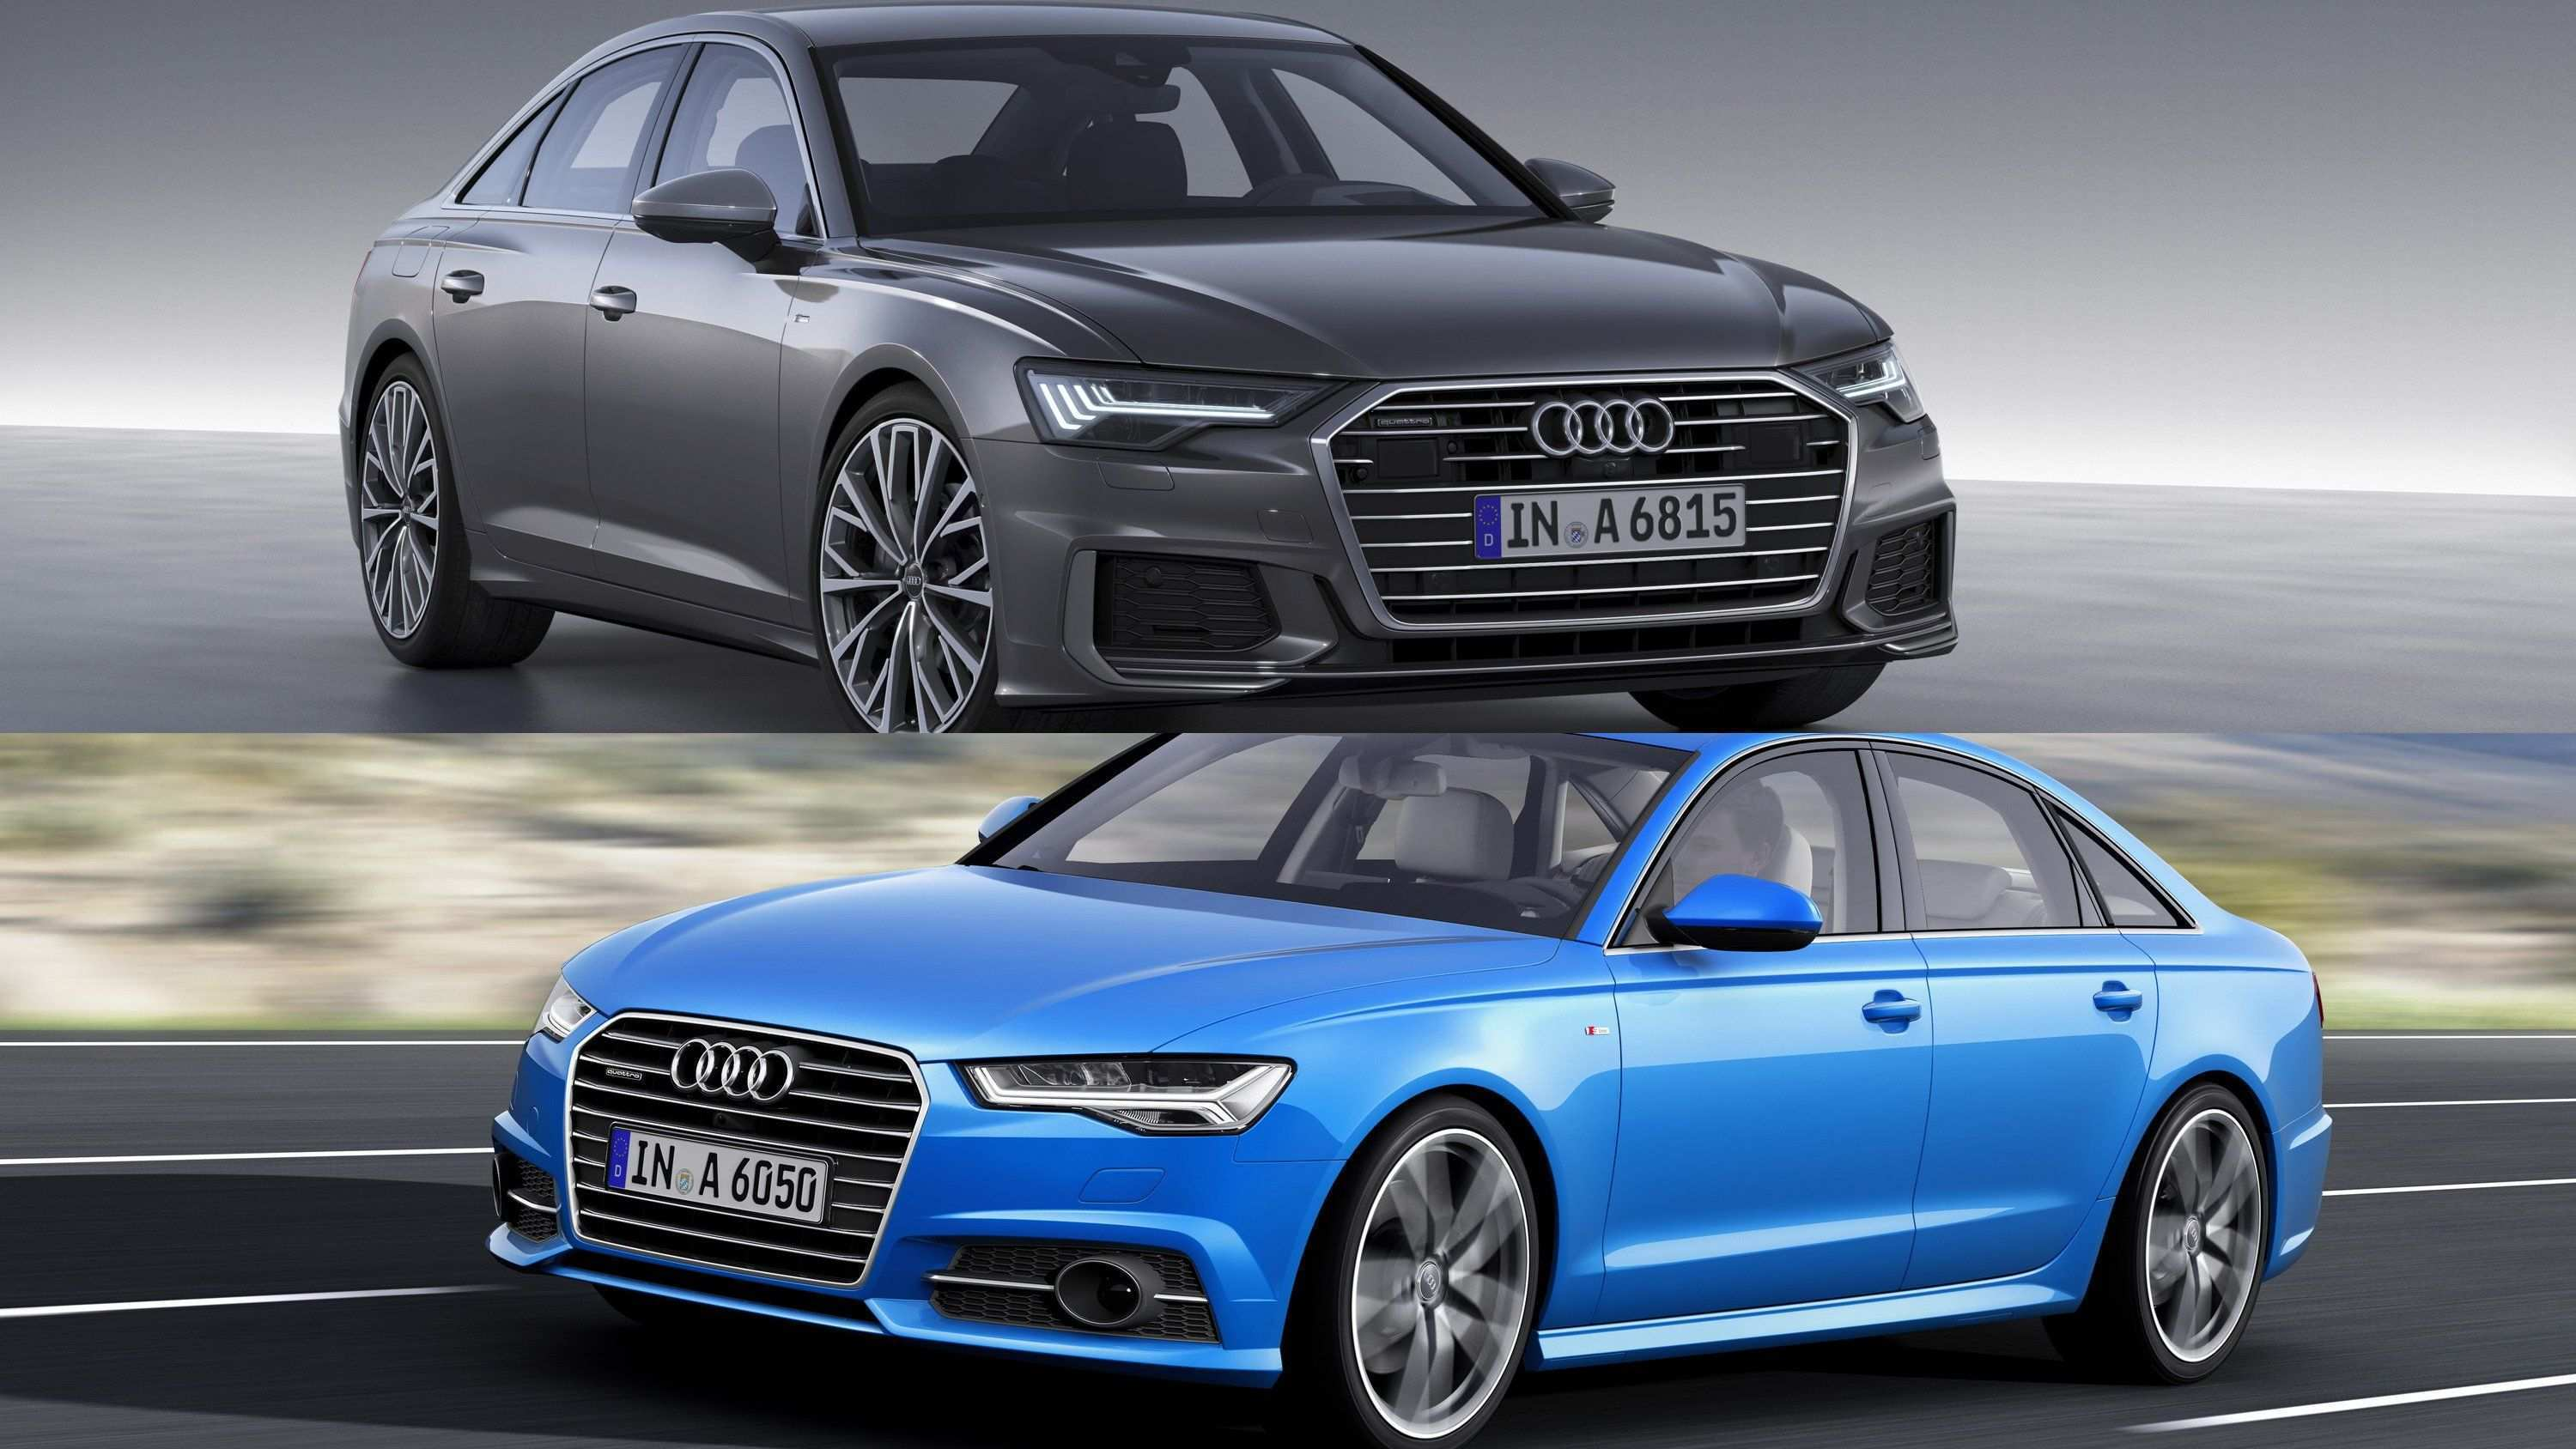 53 Gallery of 2019 Audi A6 Specs Review with 2019 Audi A6 Specs